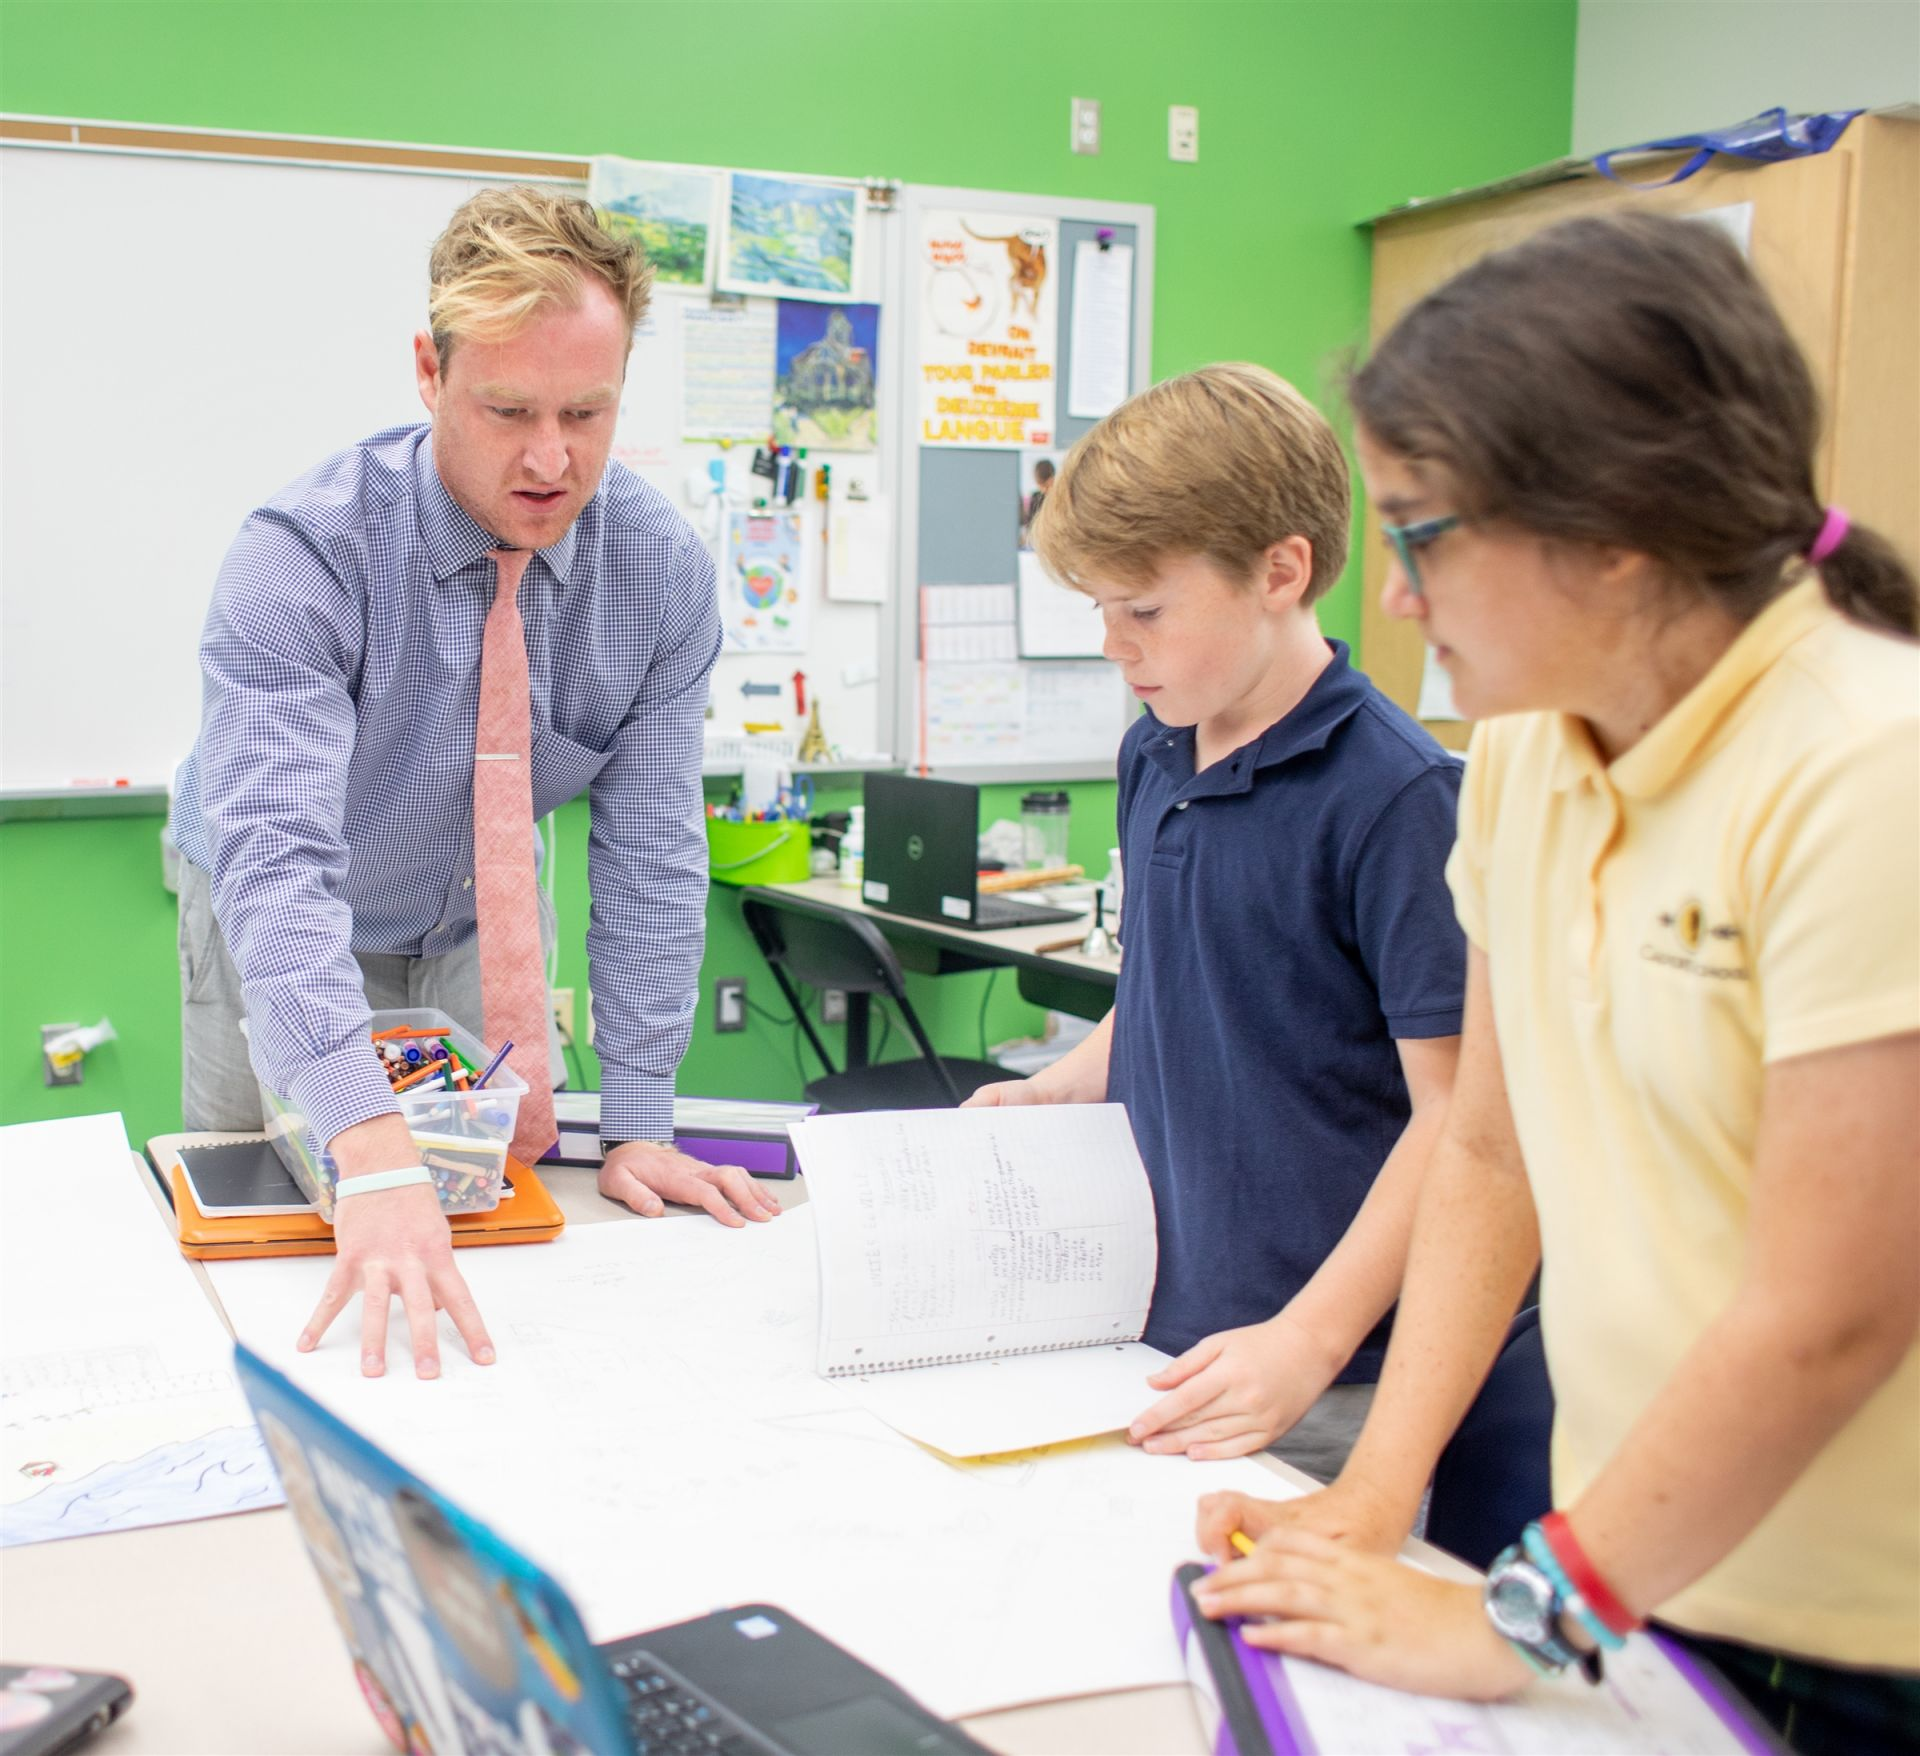 Middle School students learn in a Calvert classroom.